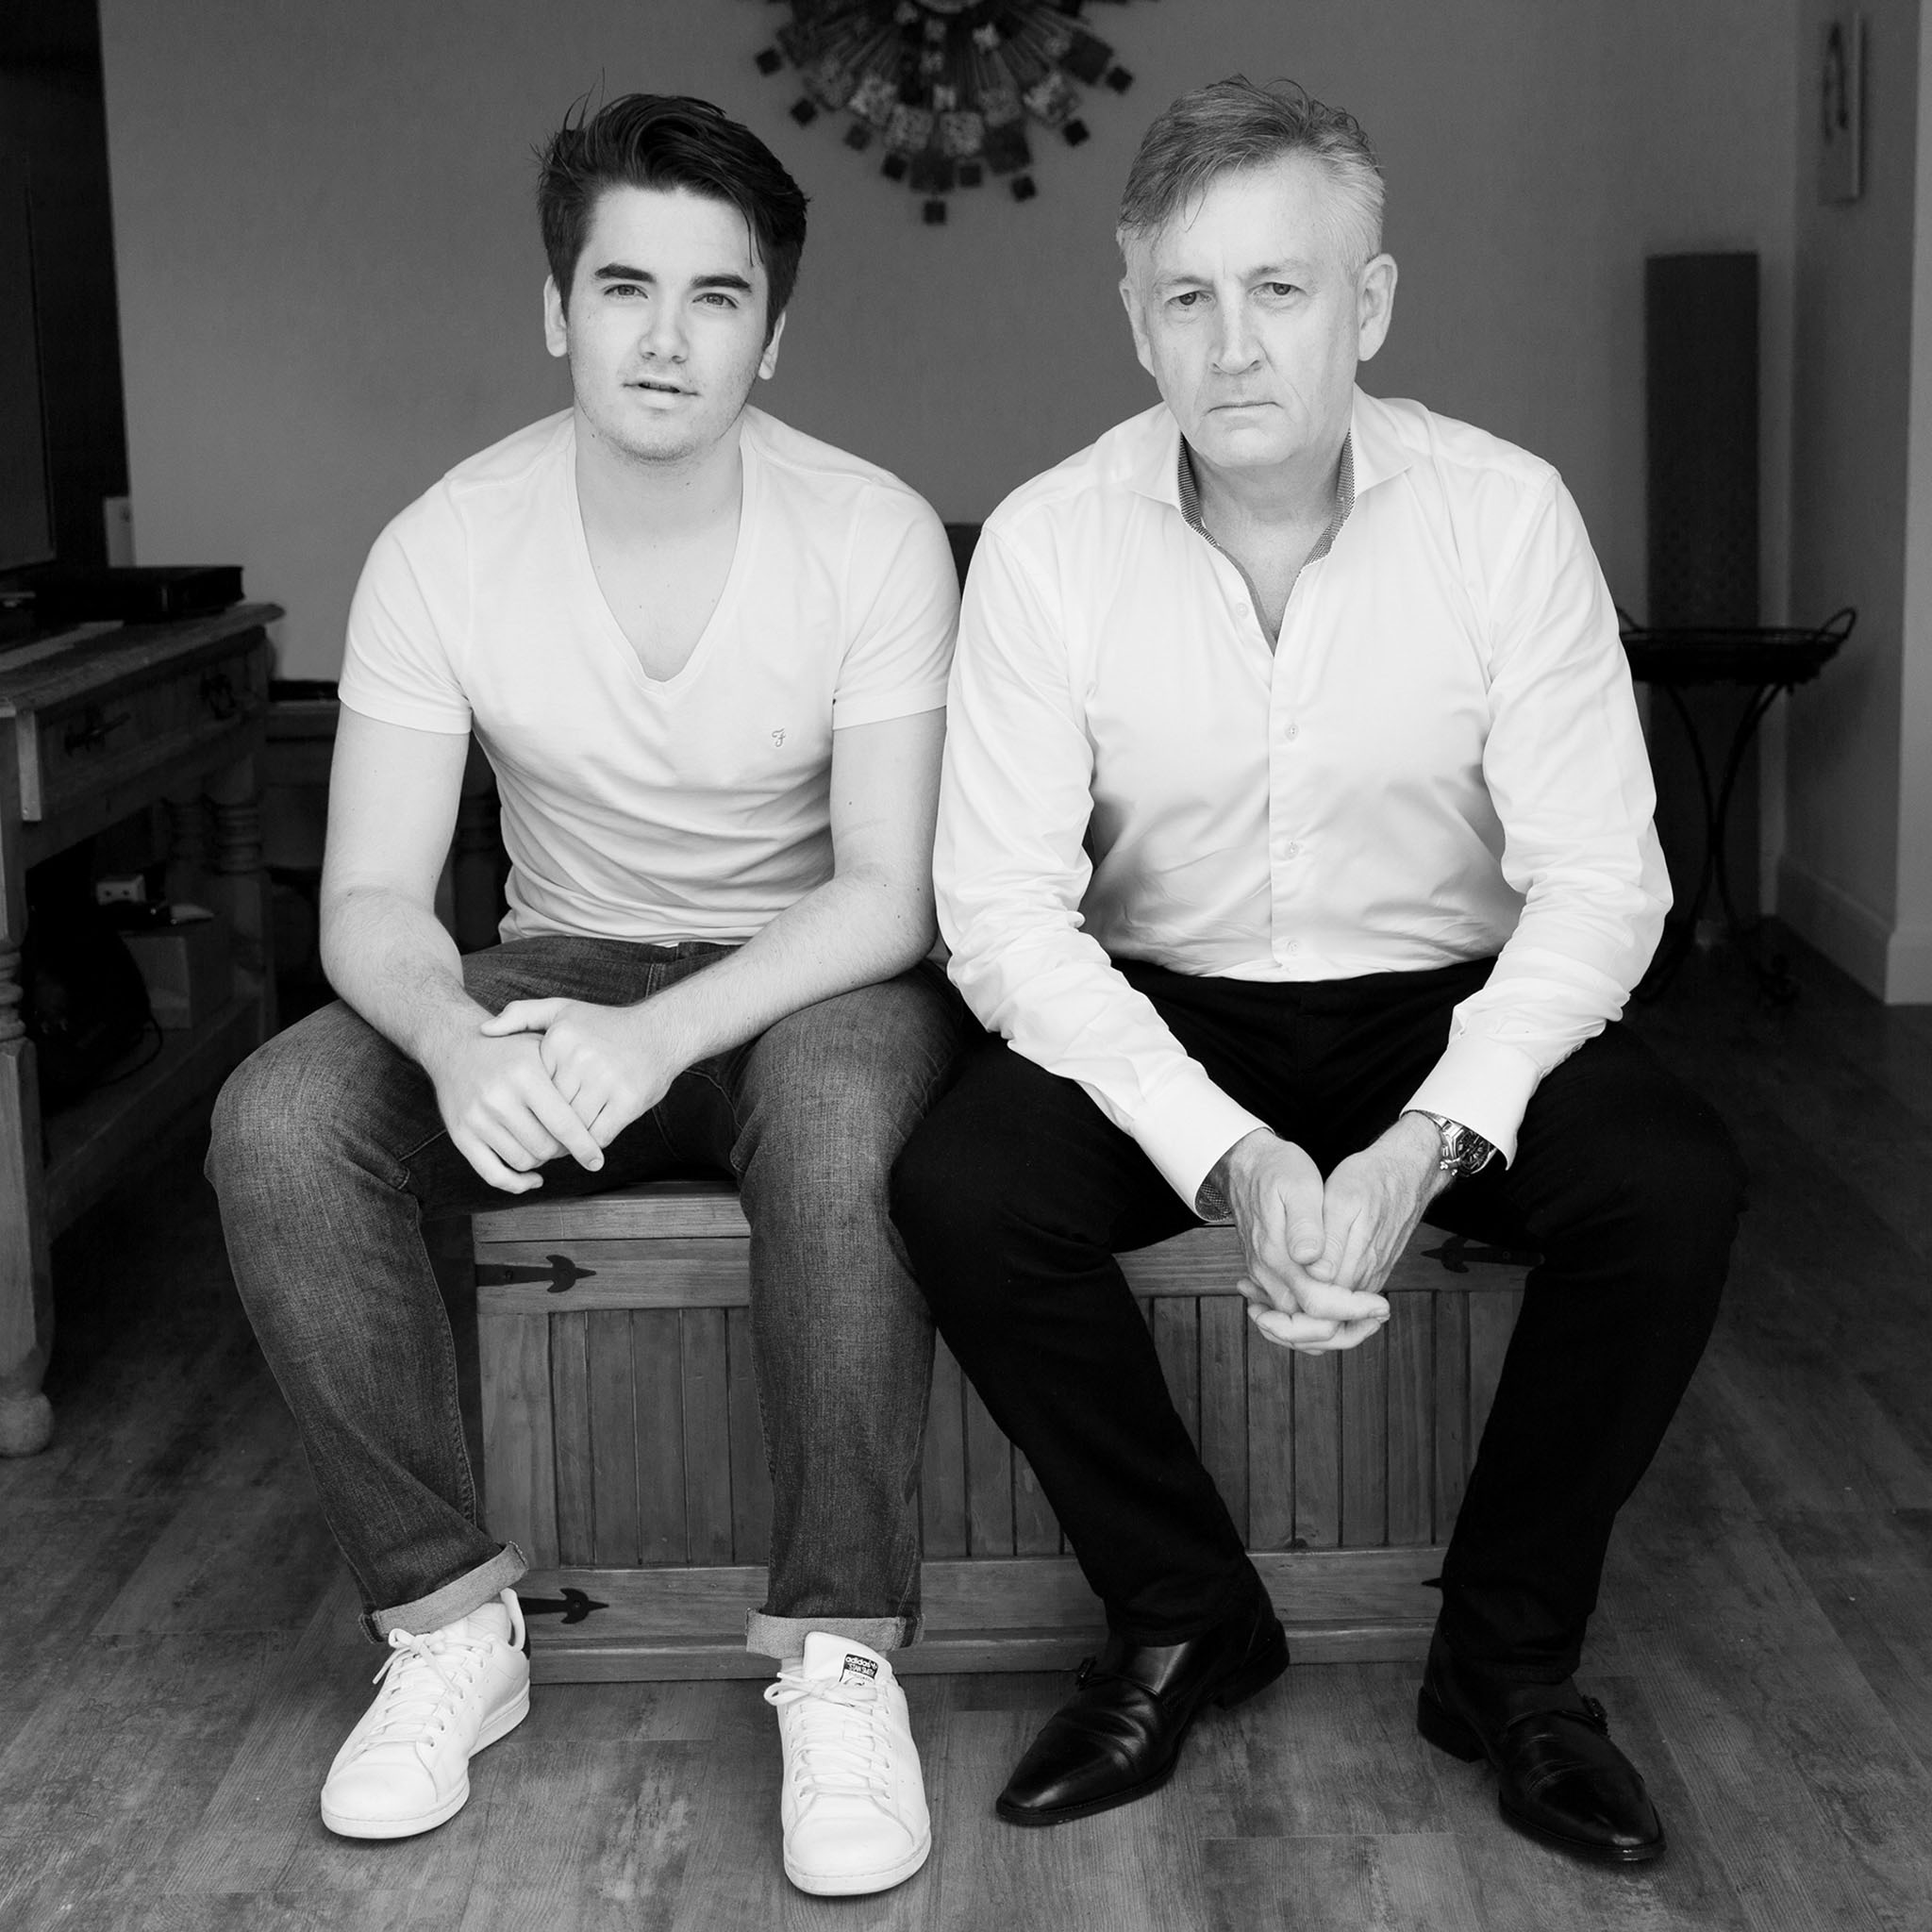 Lifestyle family portrait photography of a father and son in Wilmslow, Cheshire